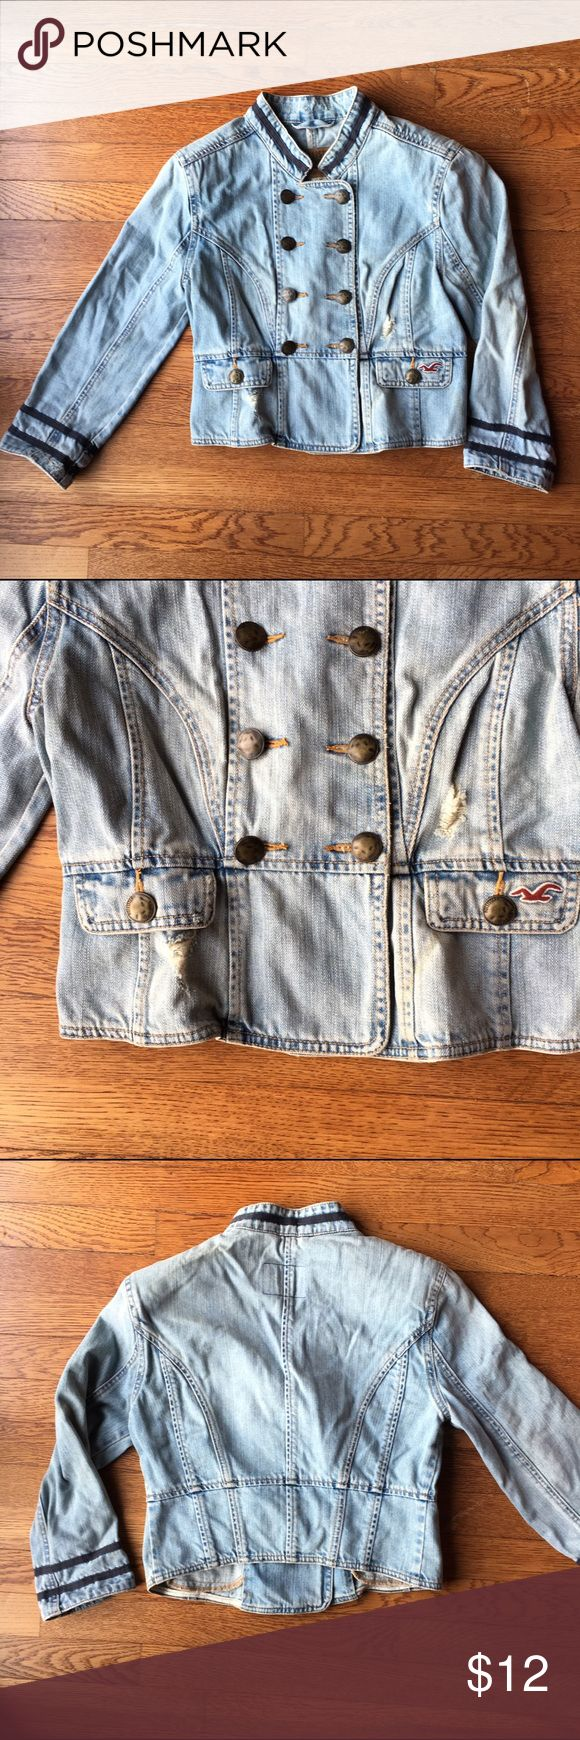 Hollister distressed jean jacket Cute hollister jacket that's distressed on the front pockets. The shoulders have pads. The width of the shoulders are 15inches and the length is about 17 inches! Hollister Jackets & Coats Jean Jackets